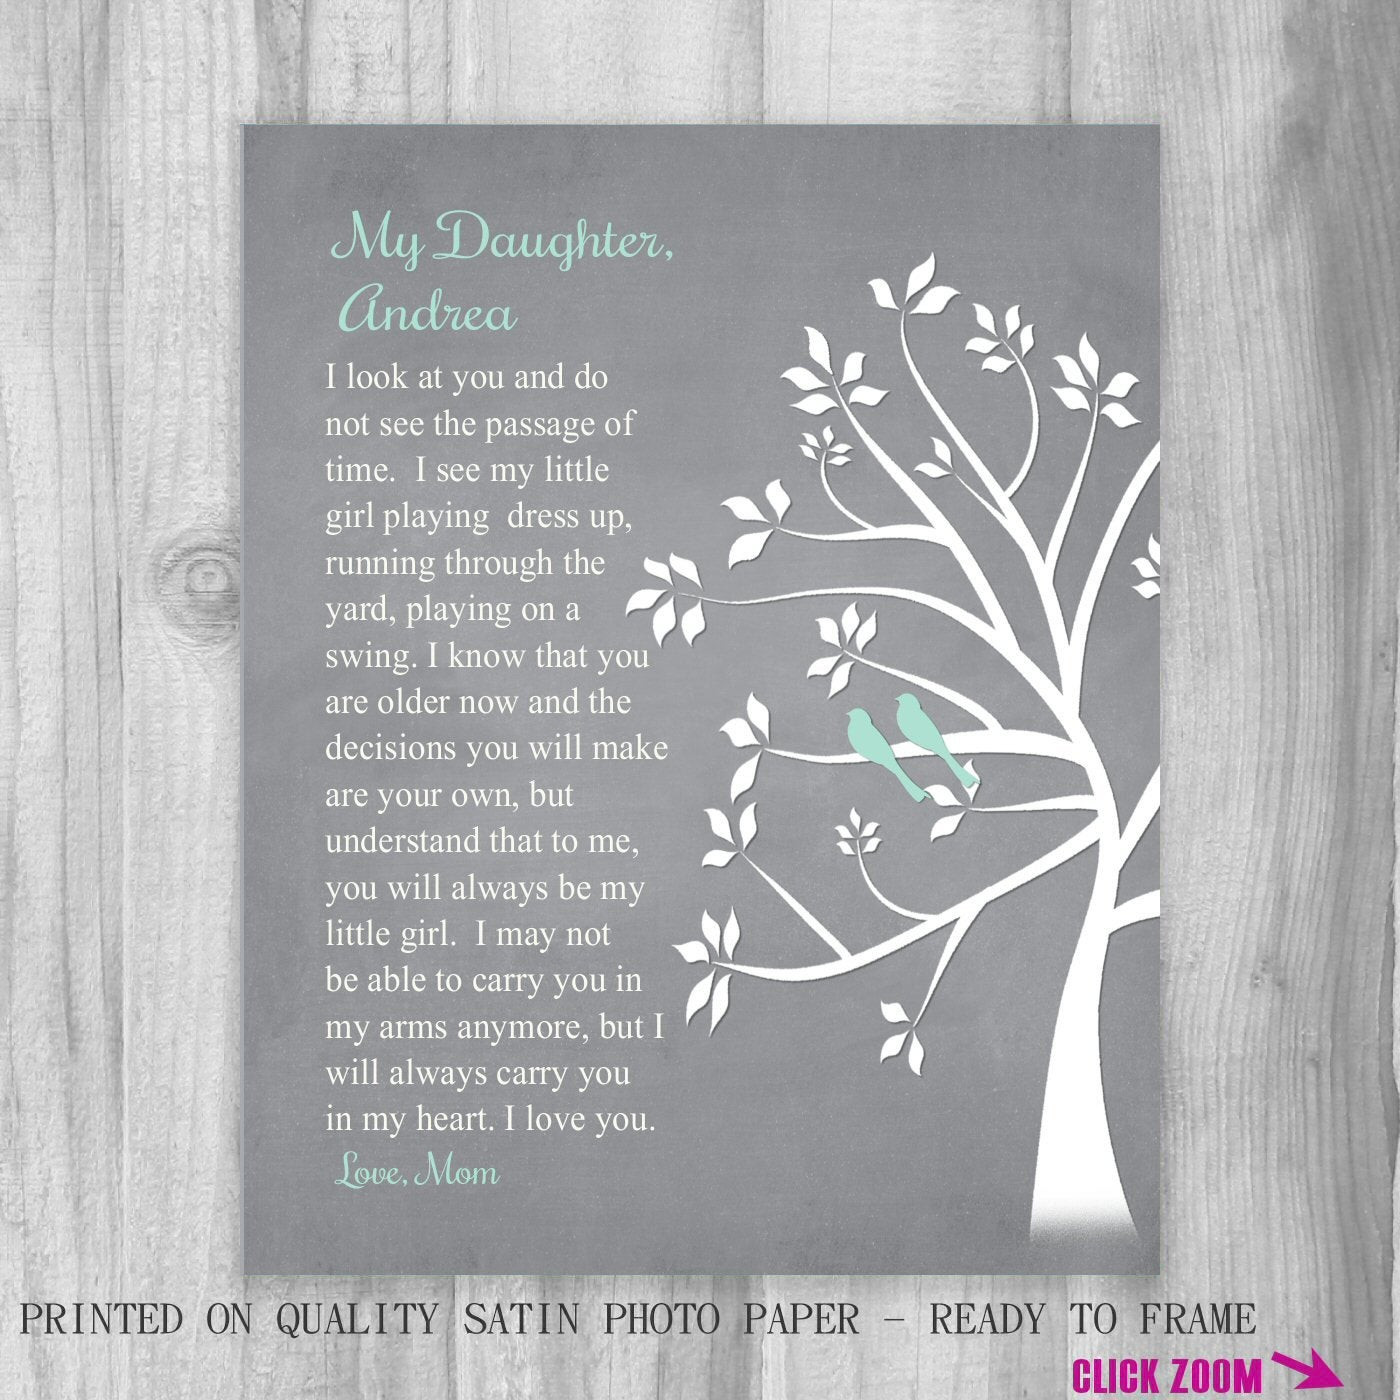 Best ideas about Wedding Gift Ideas For Daughter . Save or Pin Wedding Day Gift from Mother to Daughter Wedding Gift from Now.